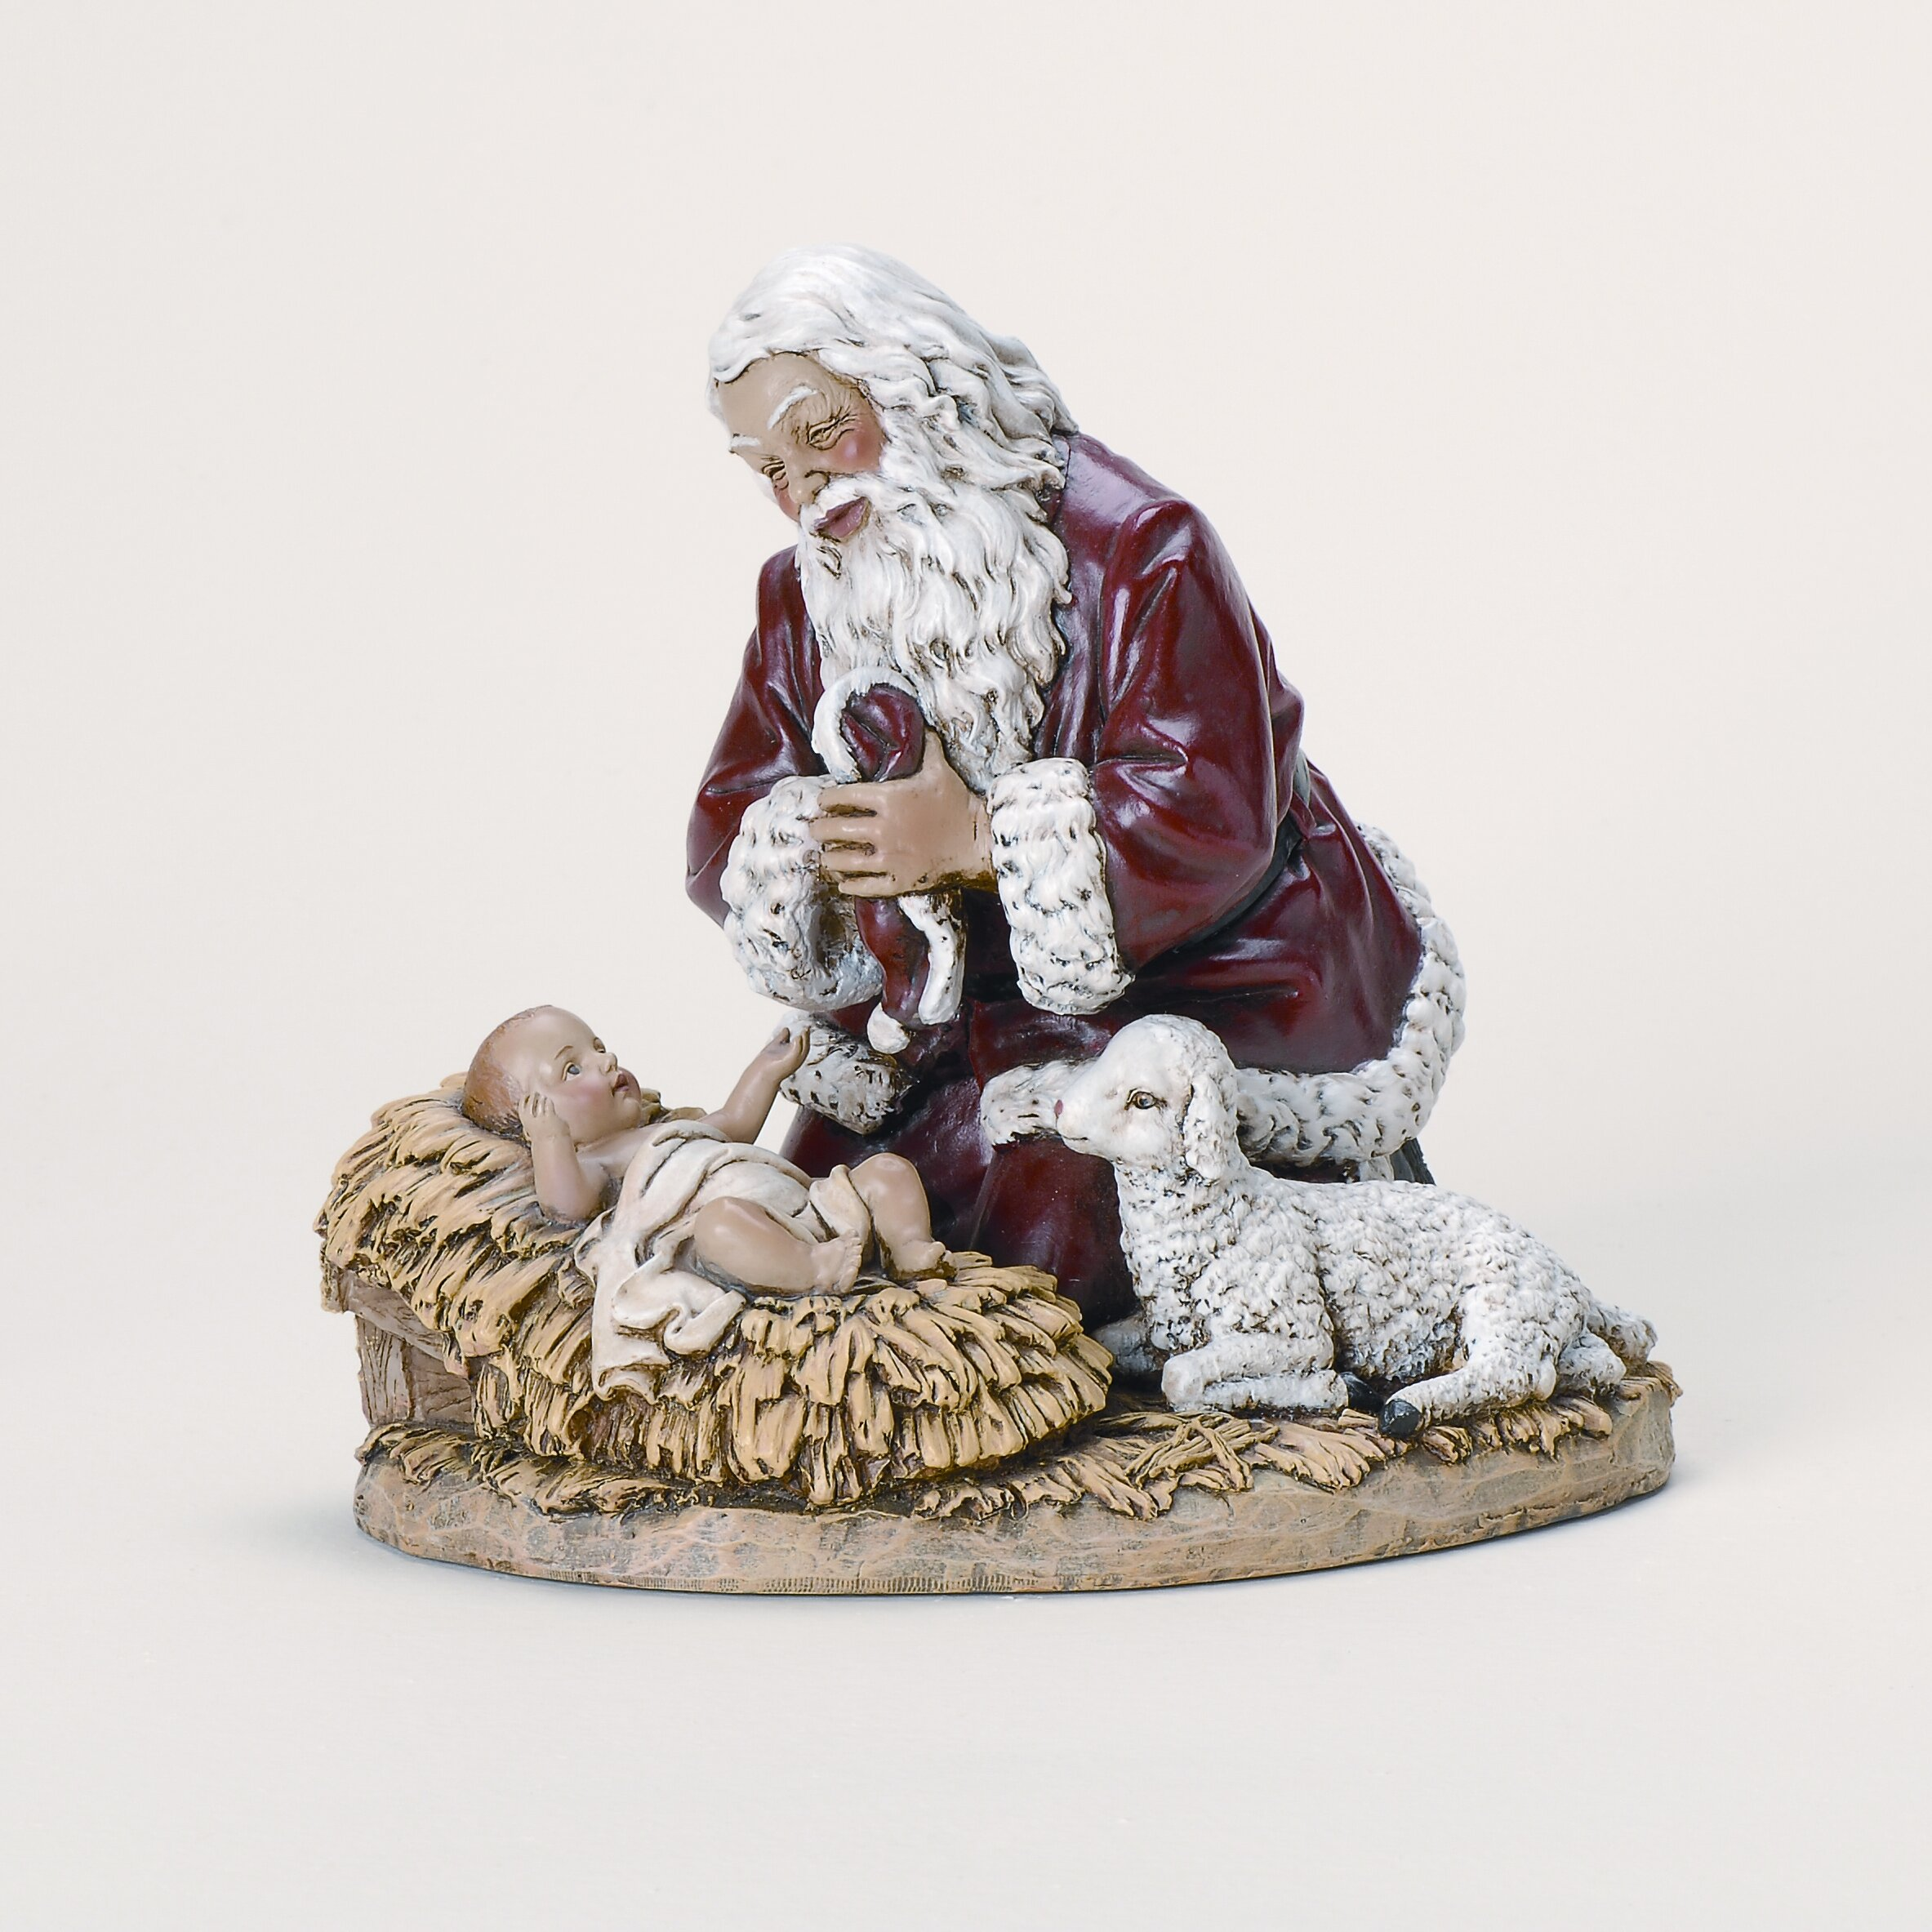 Roman Inc Kneeling Santa Figurine Amp Reviews Wayfair